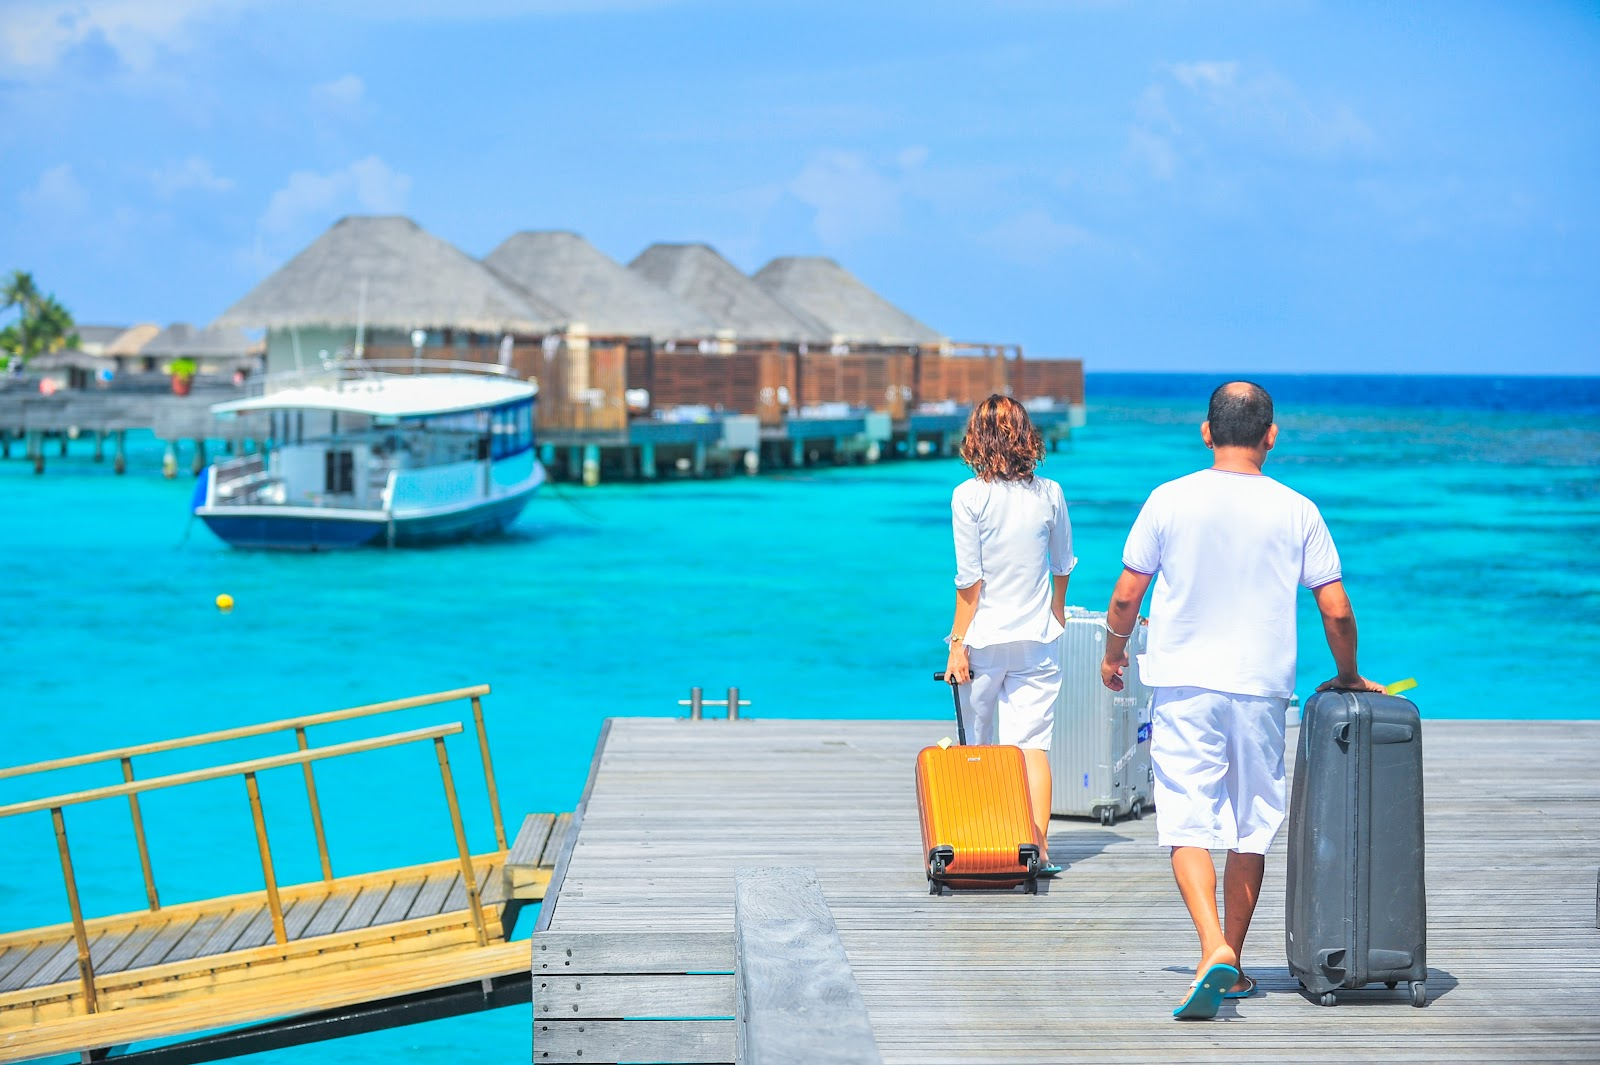 A couple with their bags arriving at the hotel on the beach